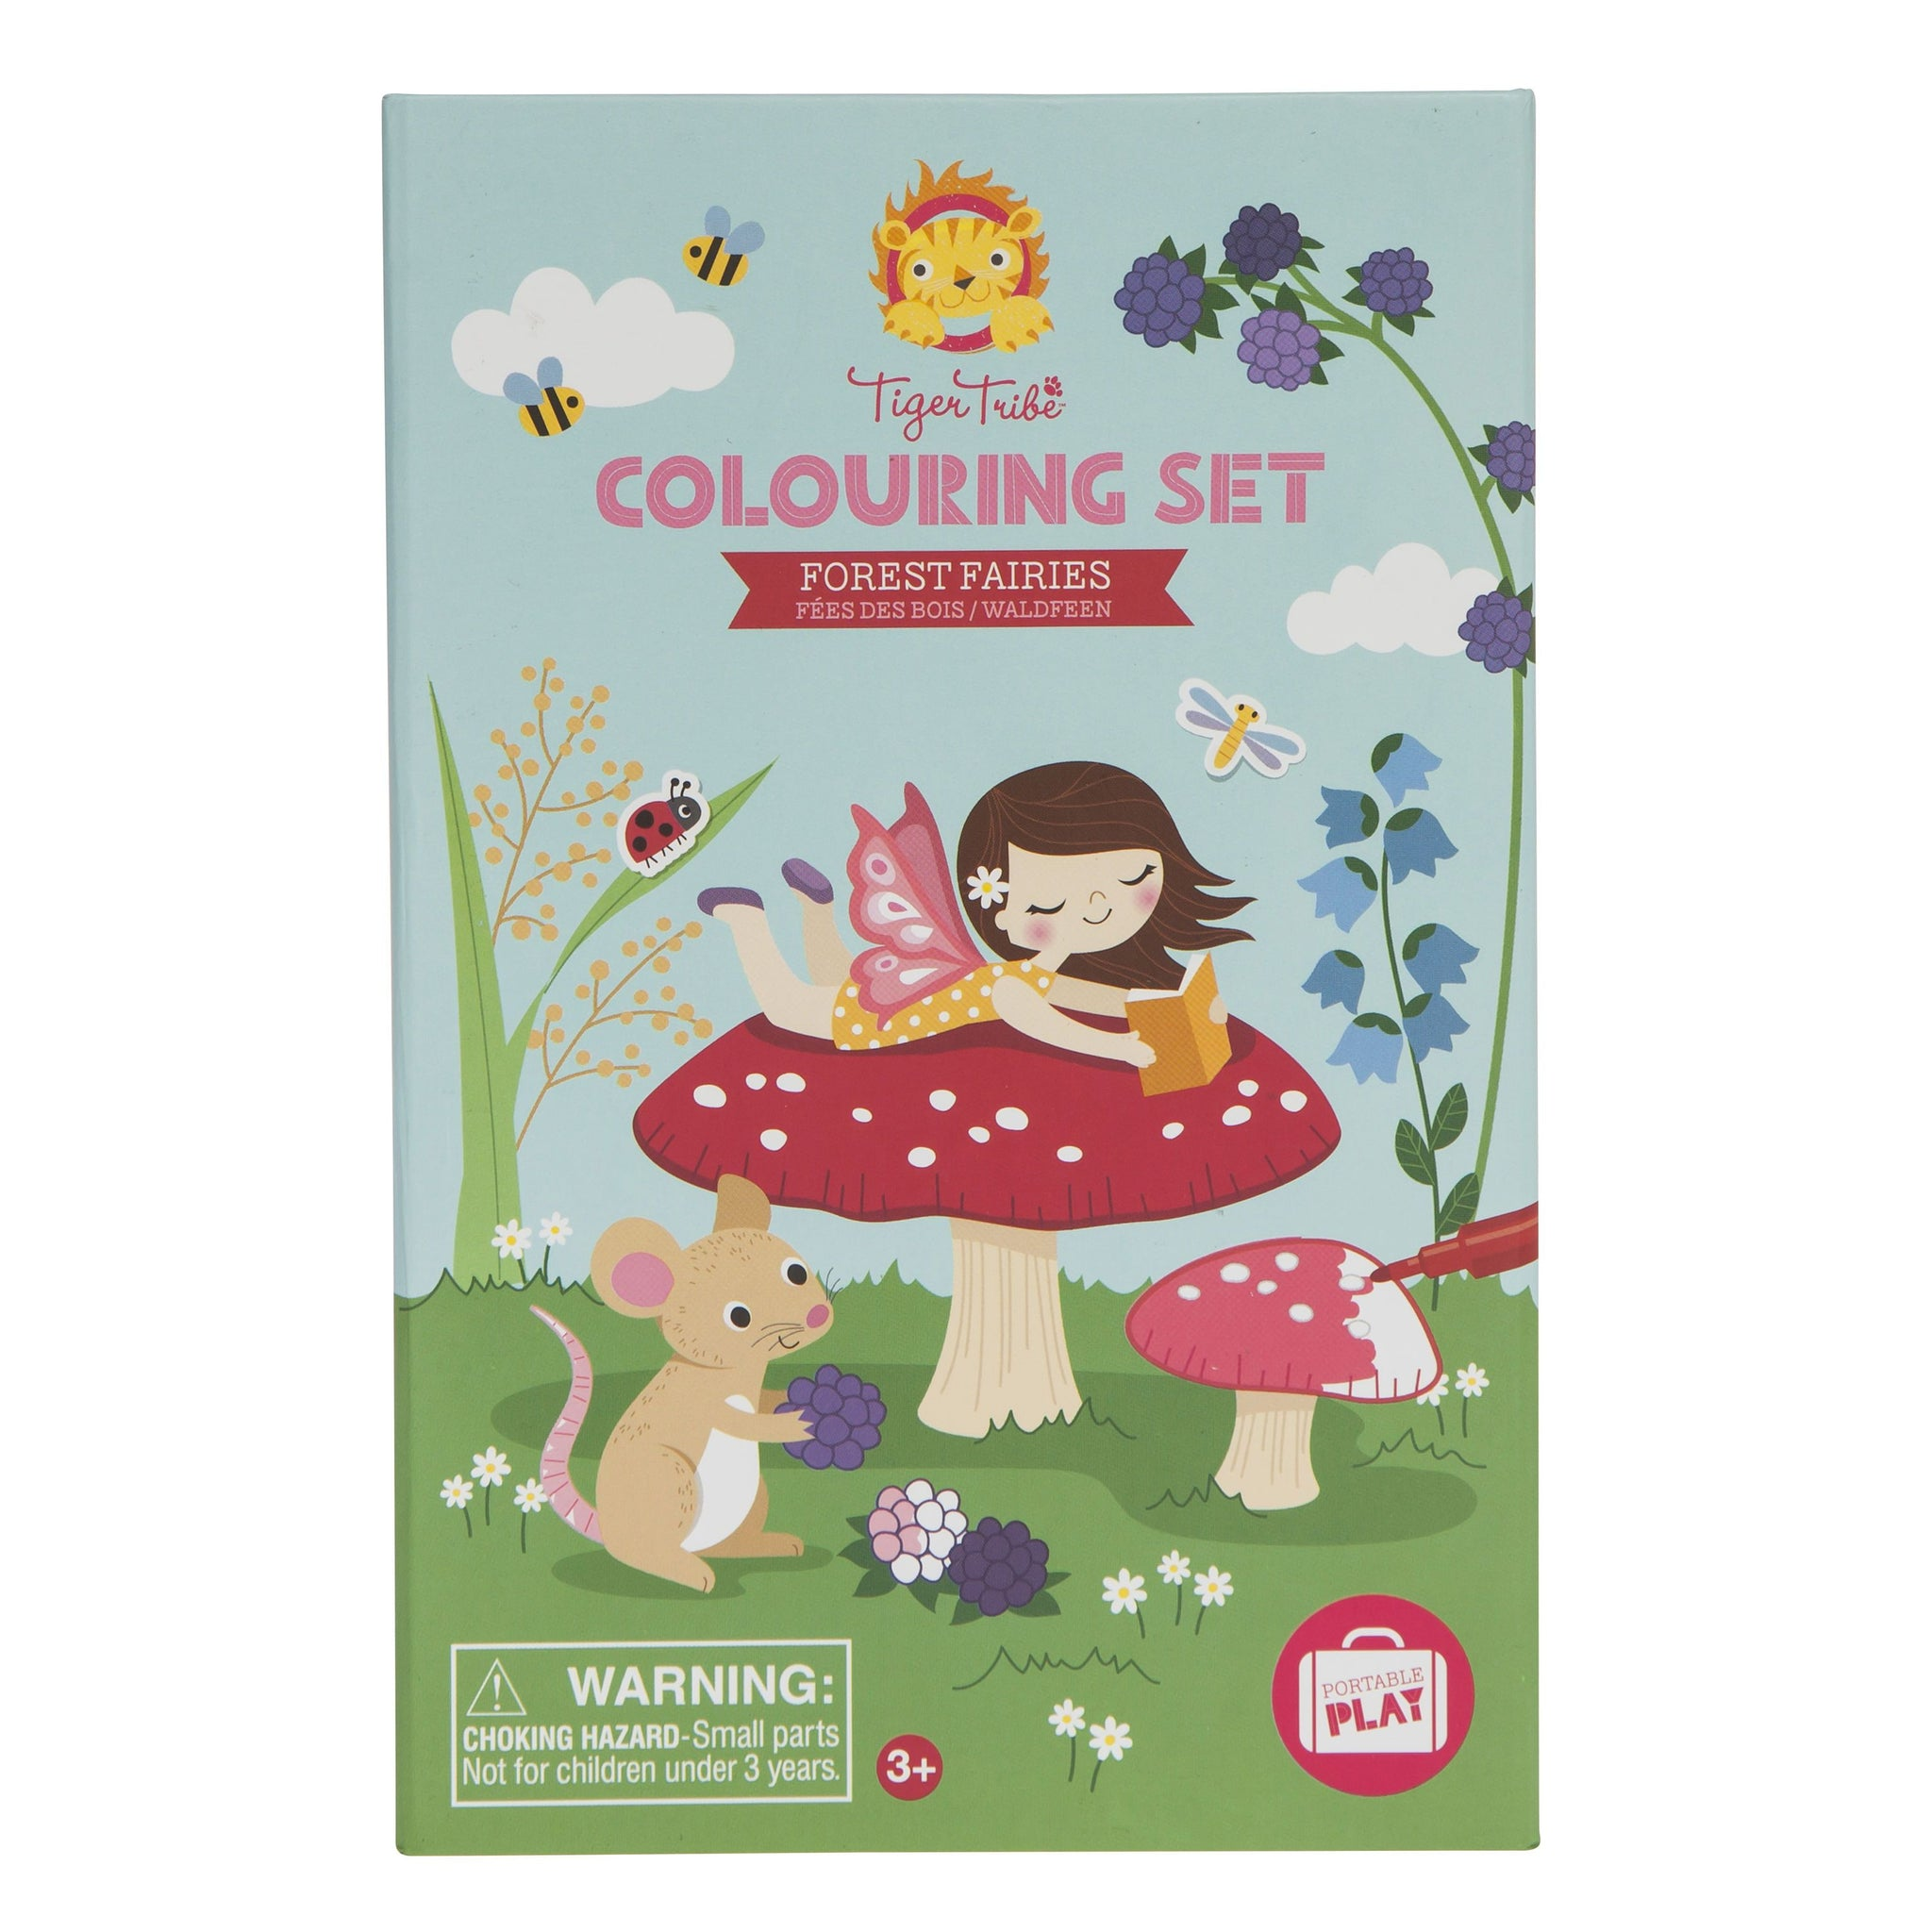 Tiger Tribe Colouring Set Tiger Tribe Activity Toys Forest Fairies at Little Earth Nest Eco Shop